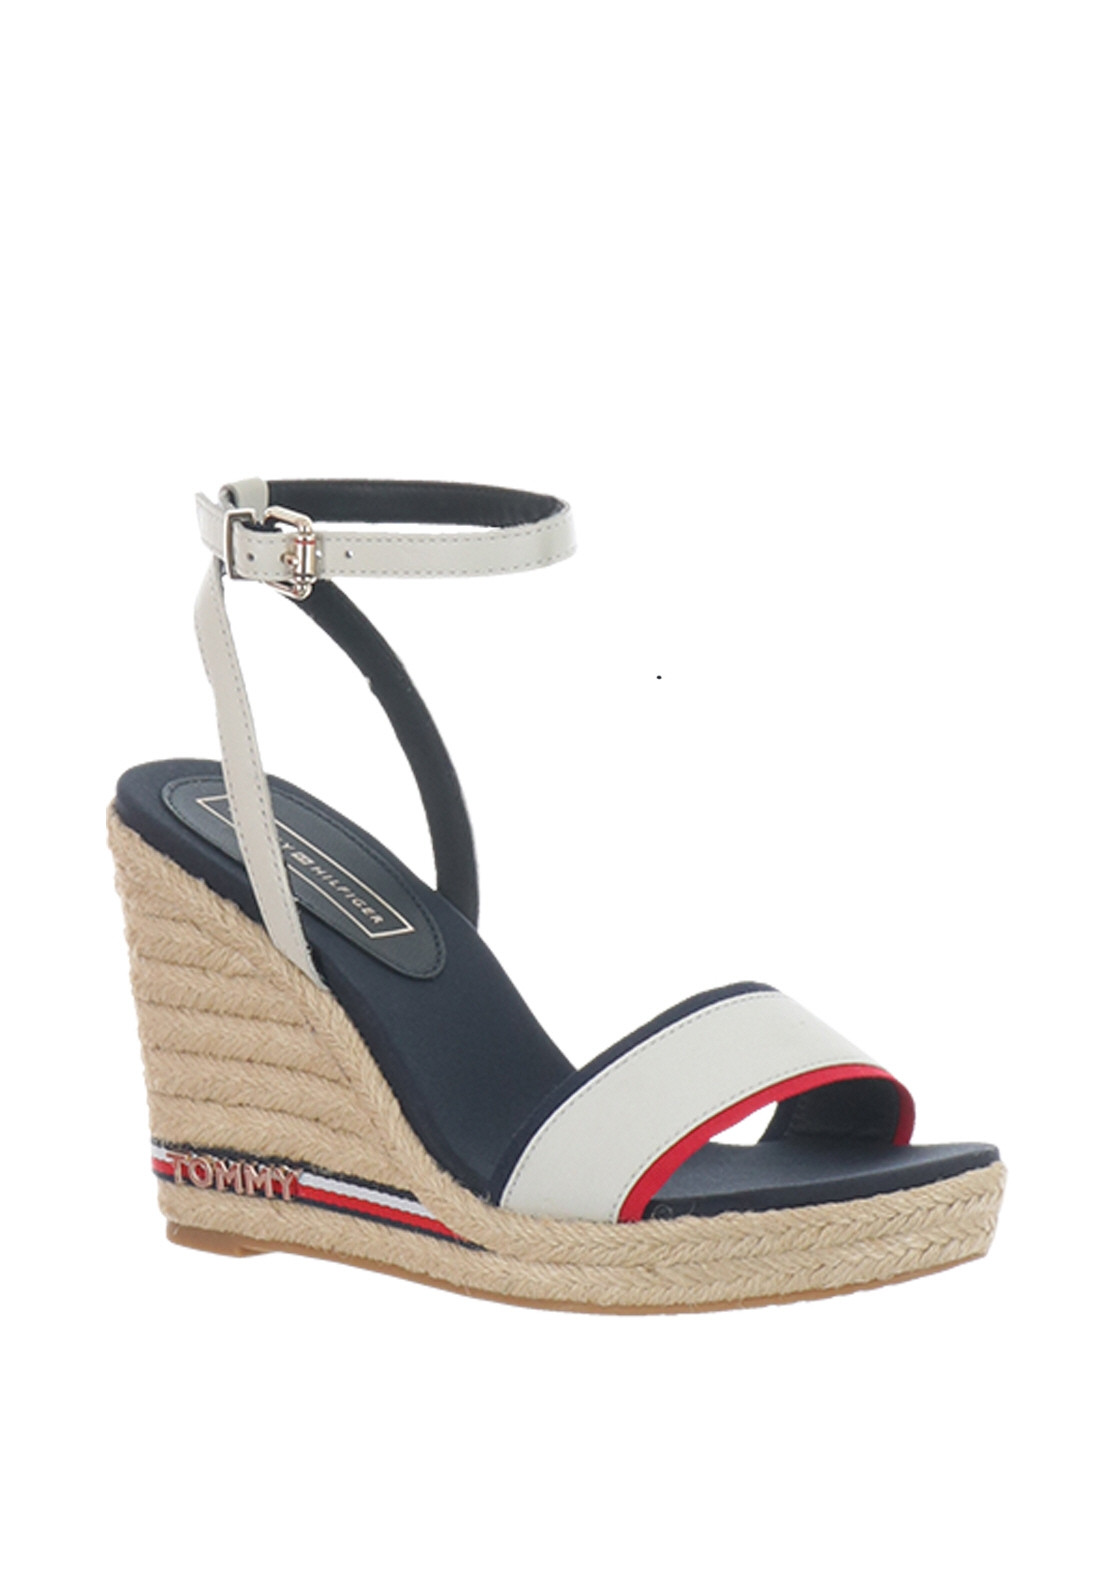 0ad5a099 Tommy Hilfiger Womens Elena Wedge Sandals, White Multi | McElhinneys